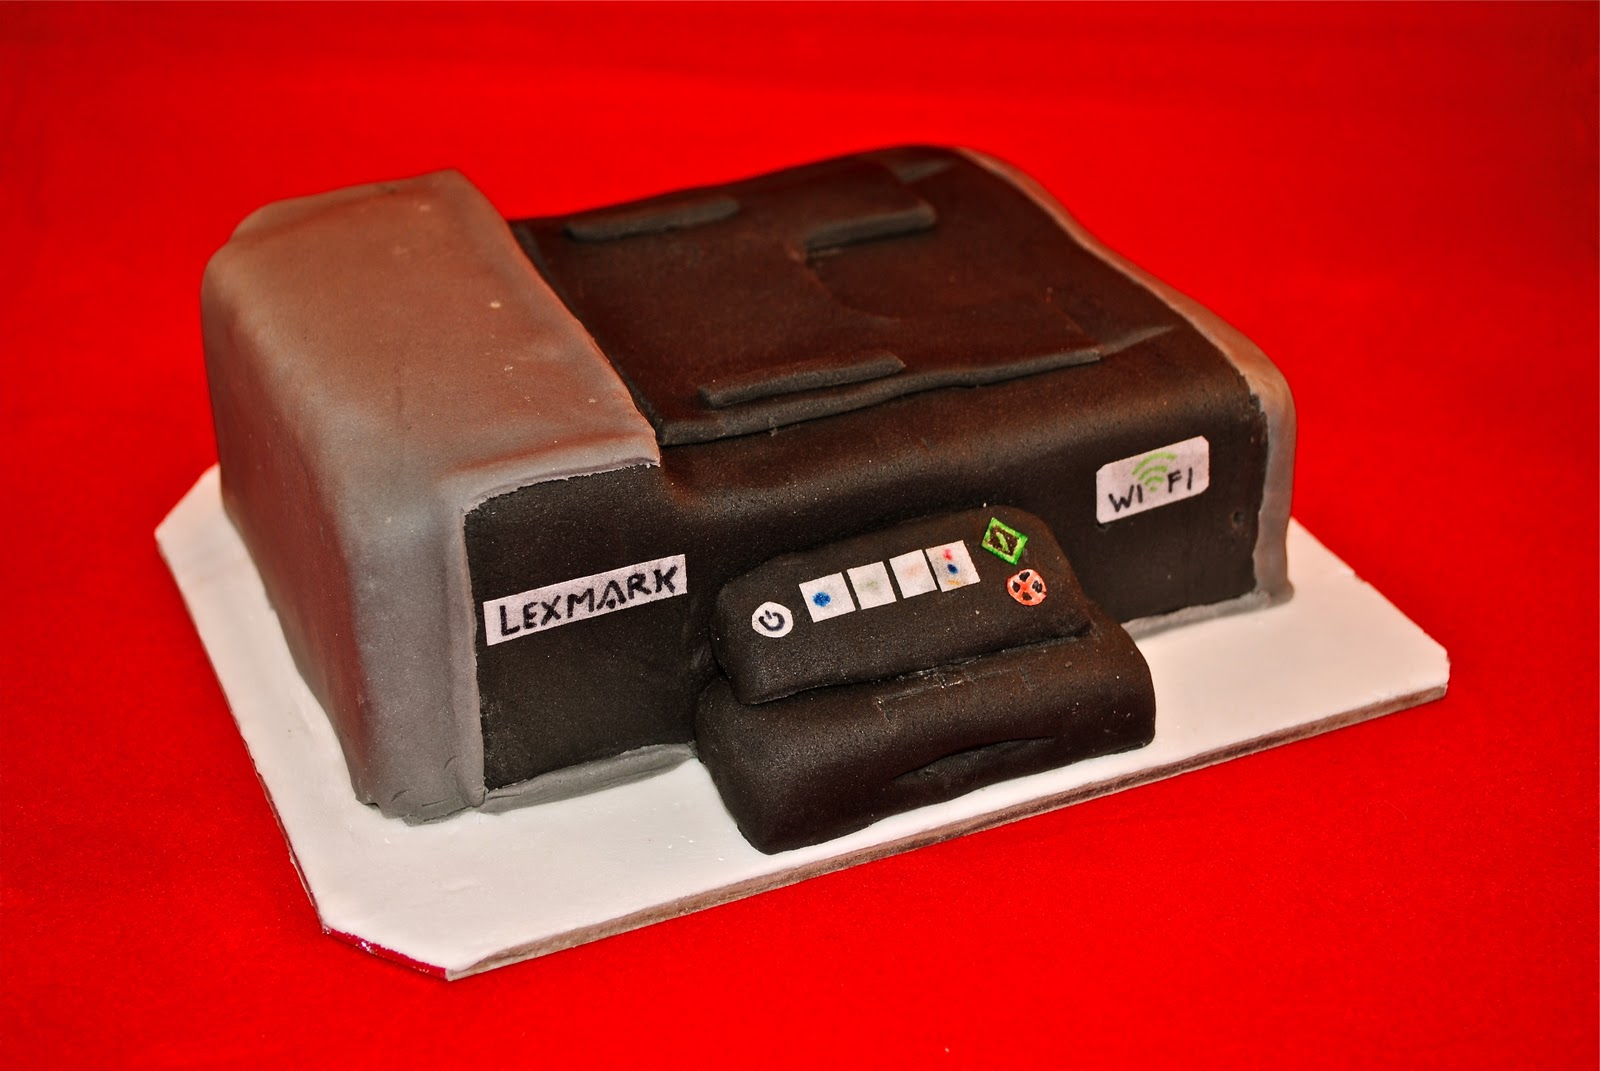 Pin cake printing edible ink printer johannesburg business for 3d printer cake decoration